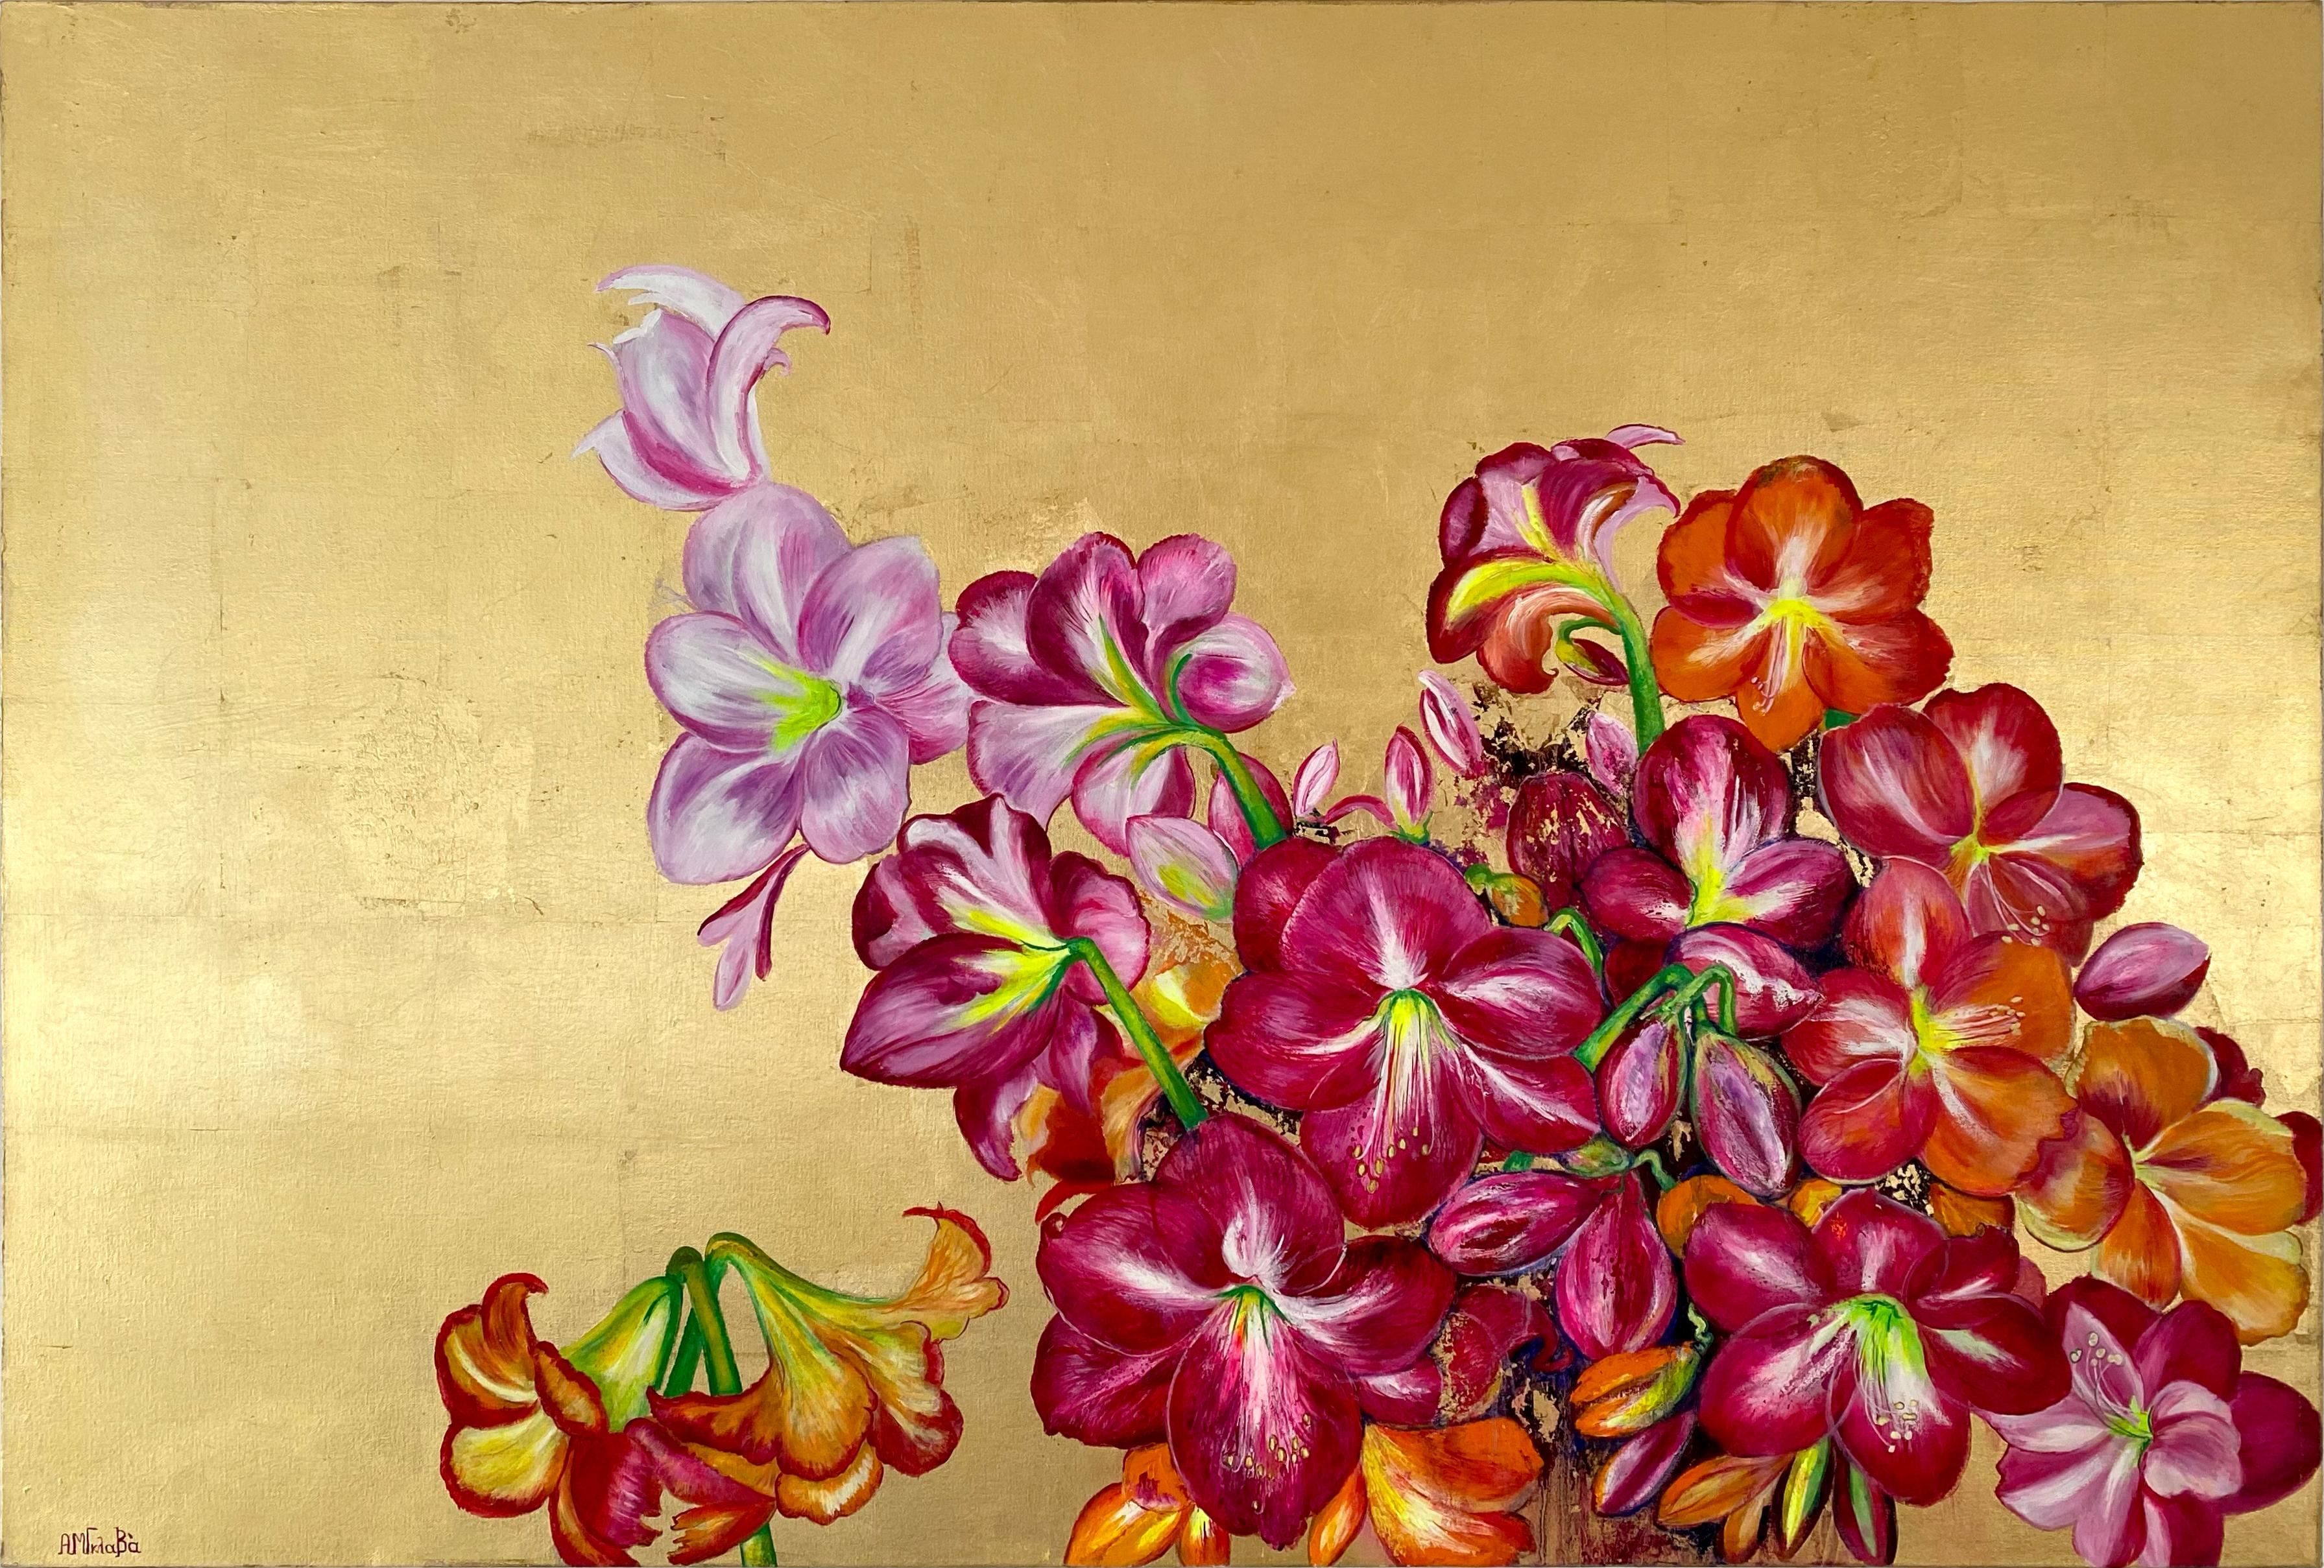 Lilies In The Valley, Large gold painting with colorful nature, flower palette